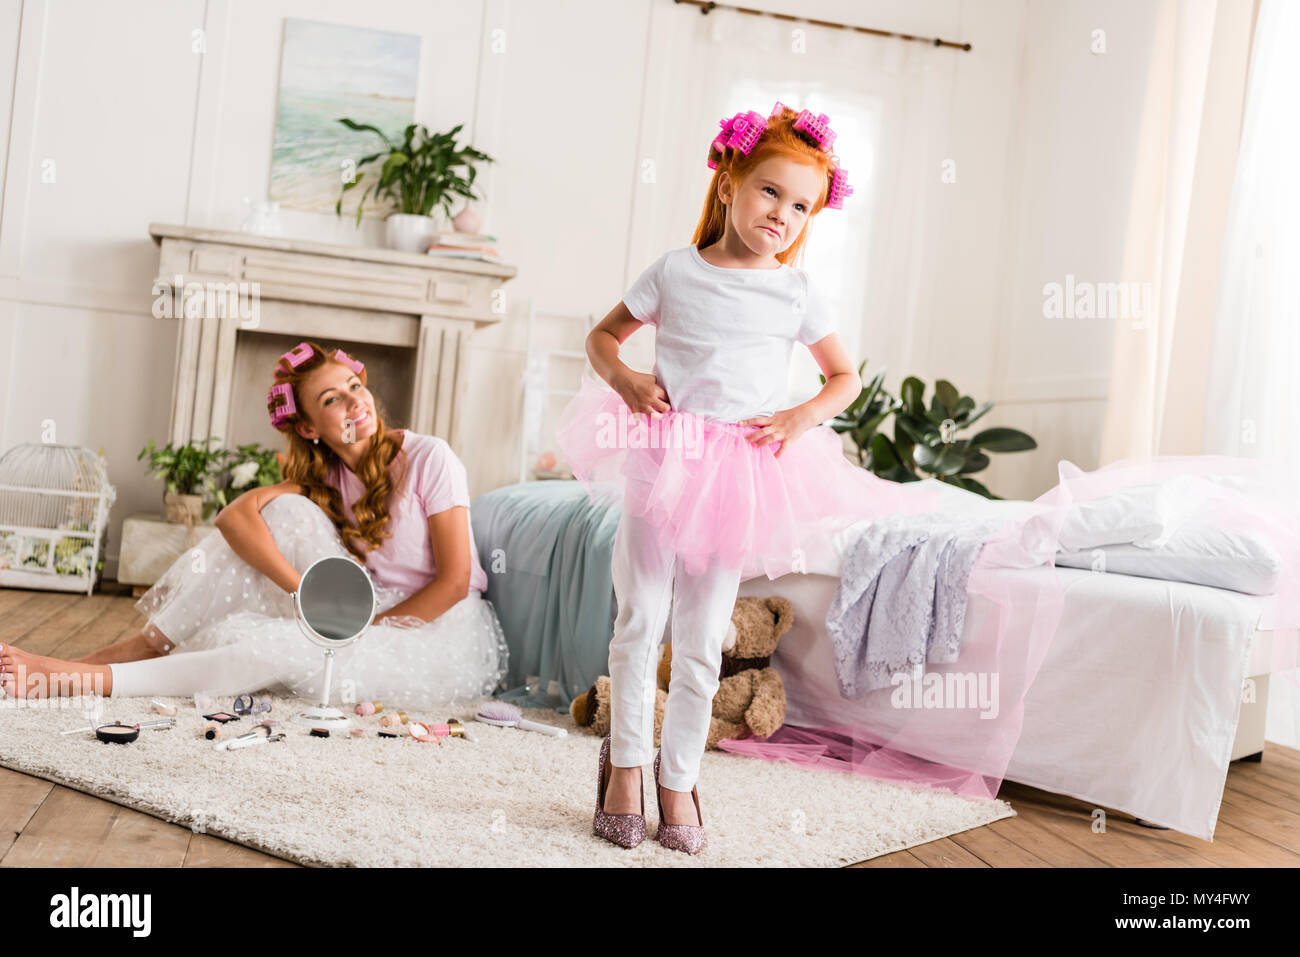 023d6f8c00 little girl wearing curlers, tutu tulle skirt and mothers high heels at home  - Stock